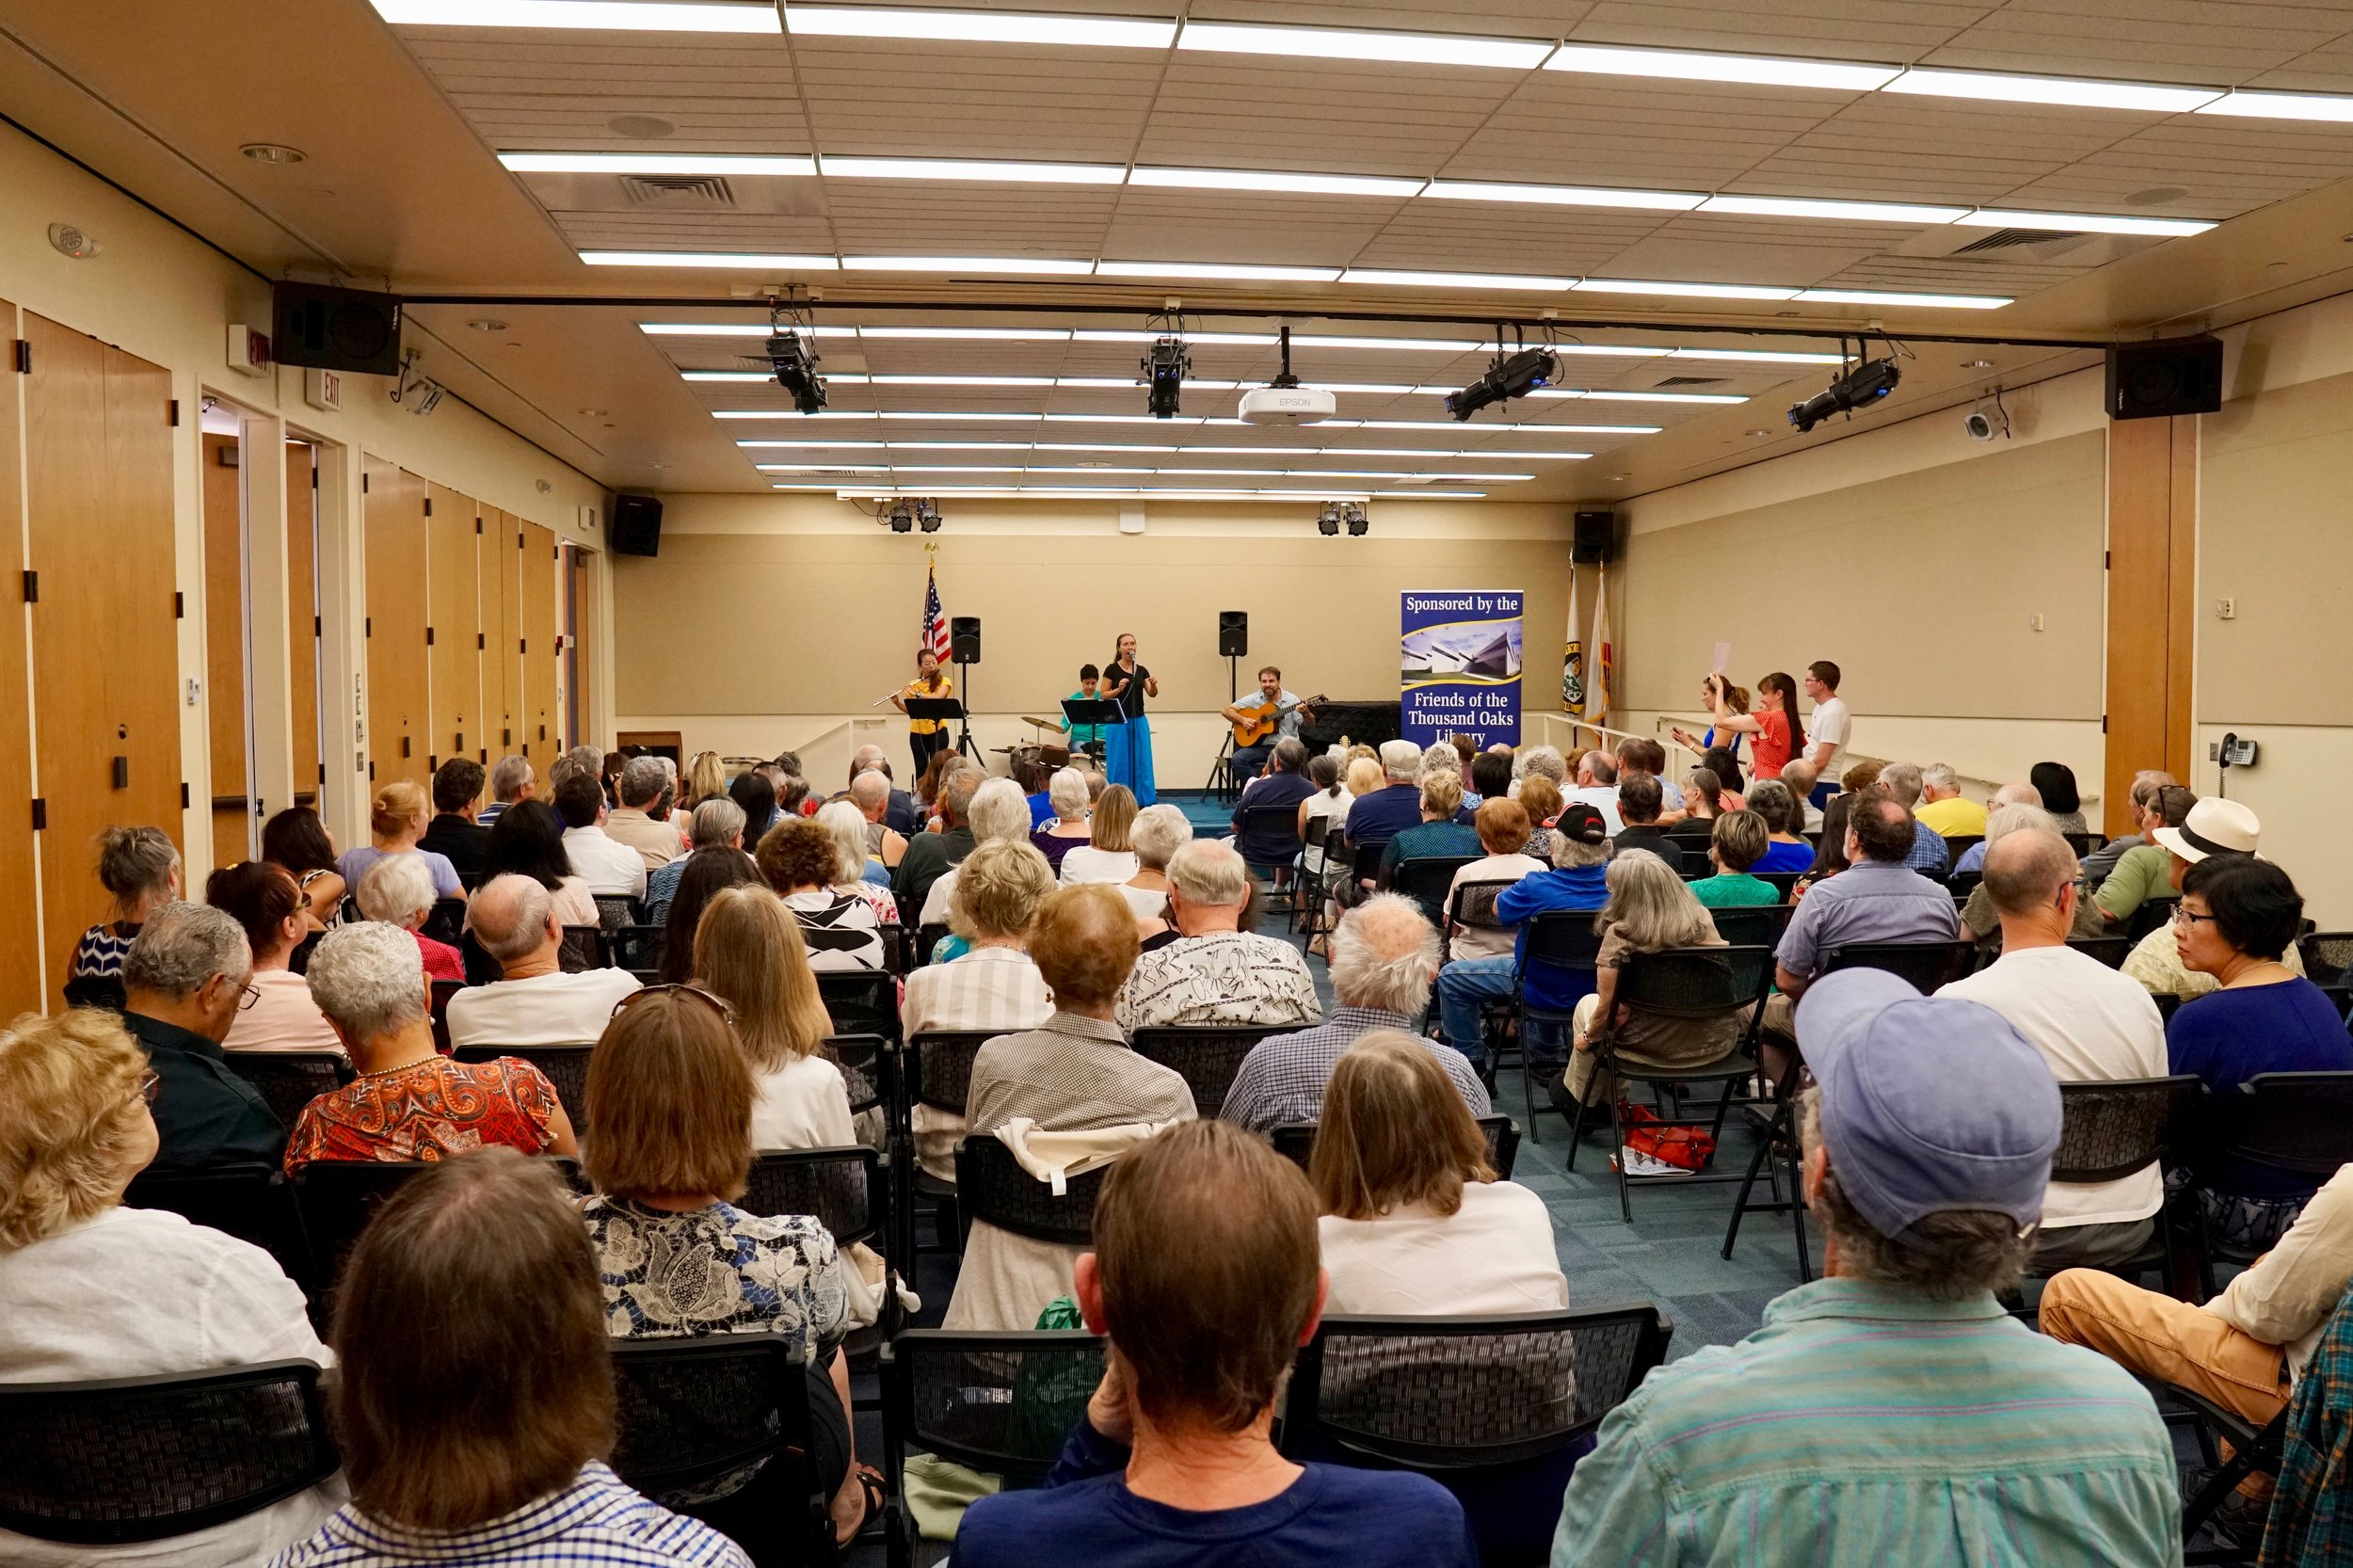 @ Thousand Oaks Library. Photo by Craig Chretien.